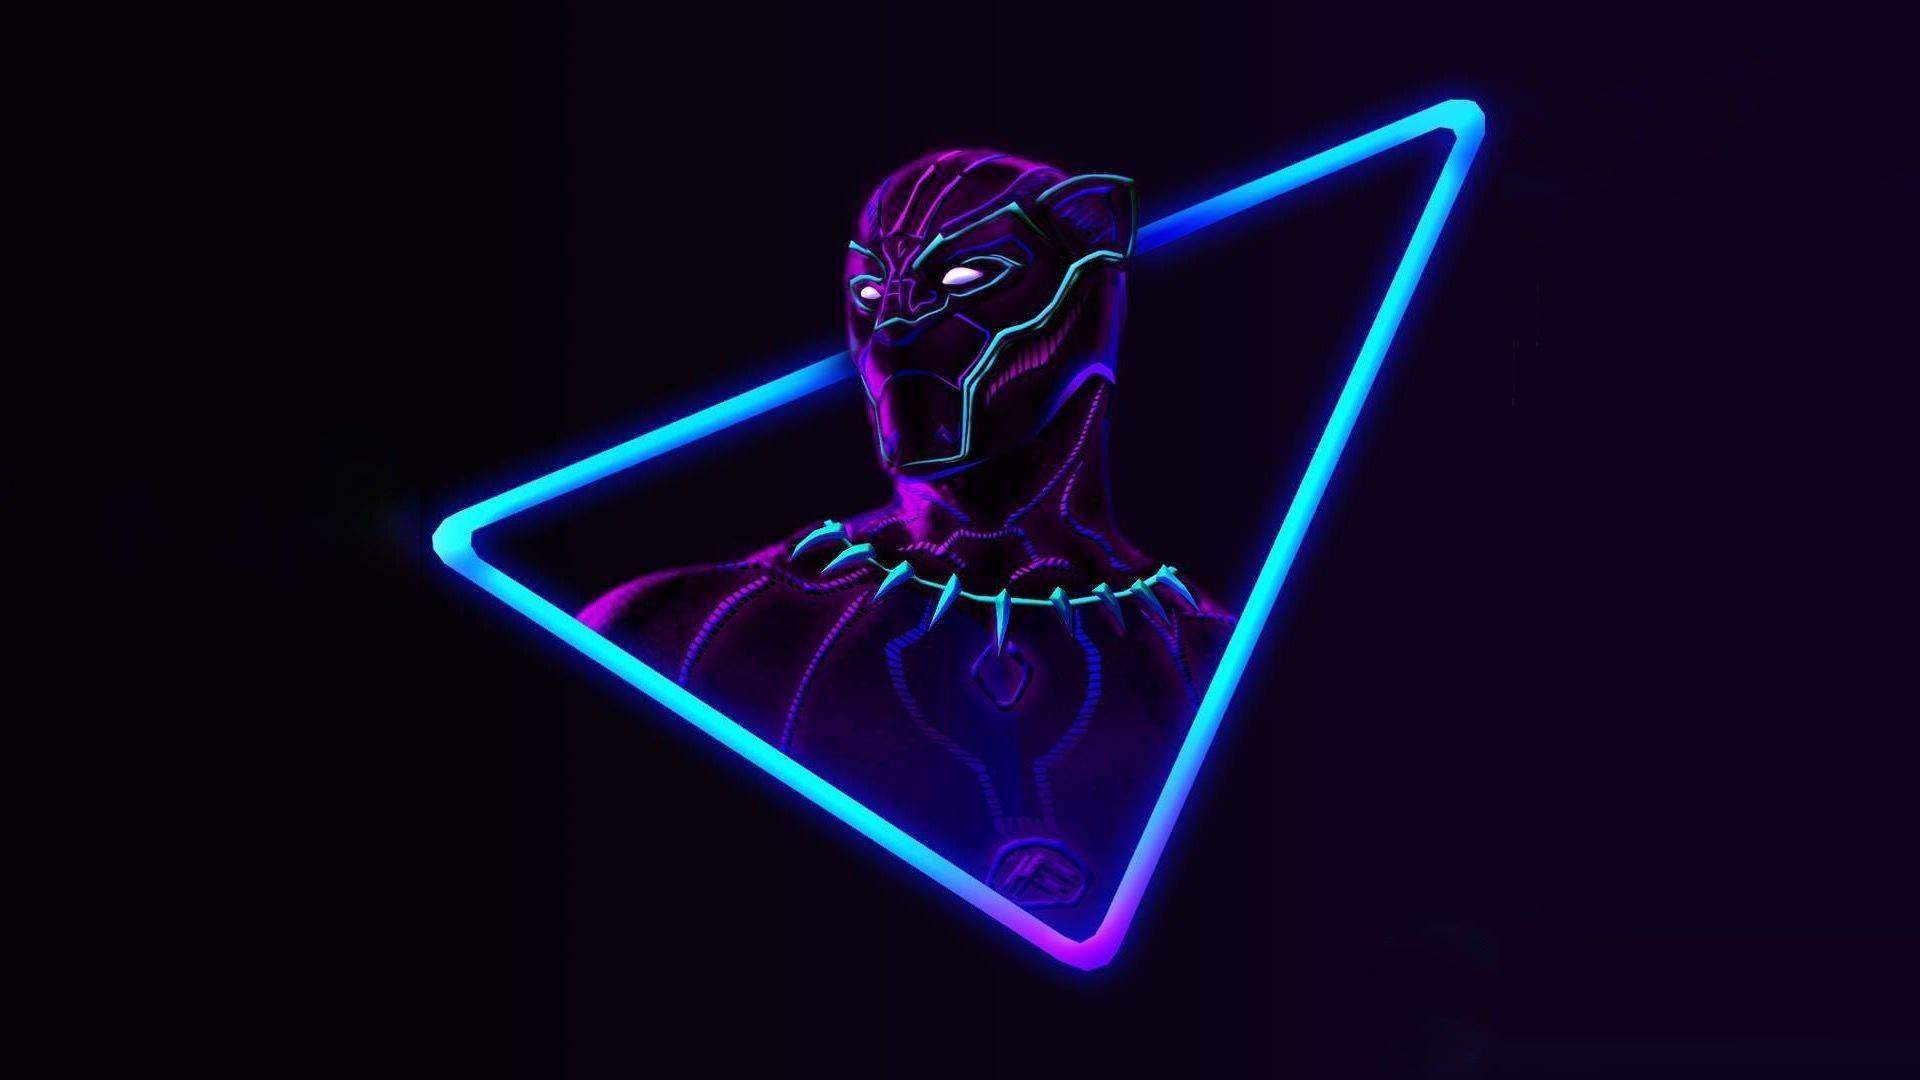 Marvel Neon Wallpapers Top Free Marvel Neon Backgrounds Wallpaperaccess